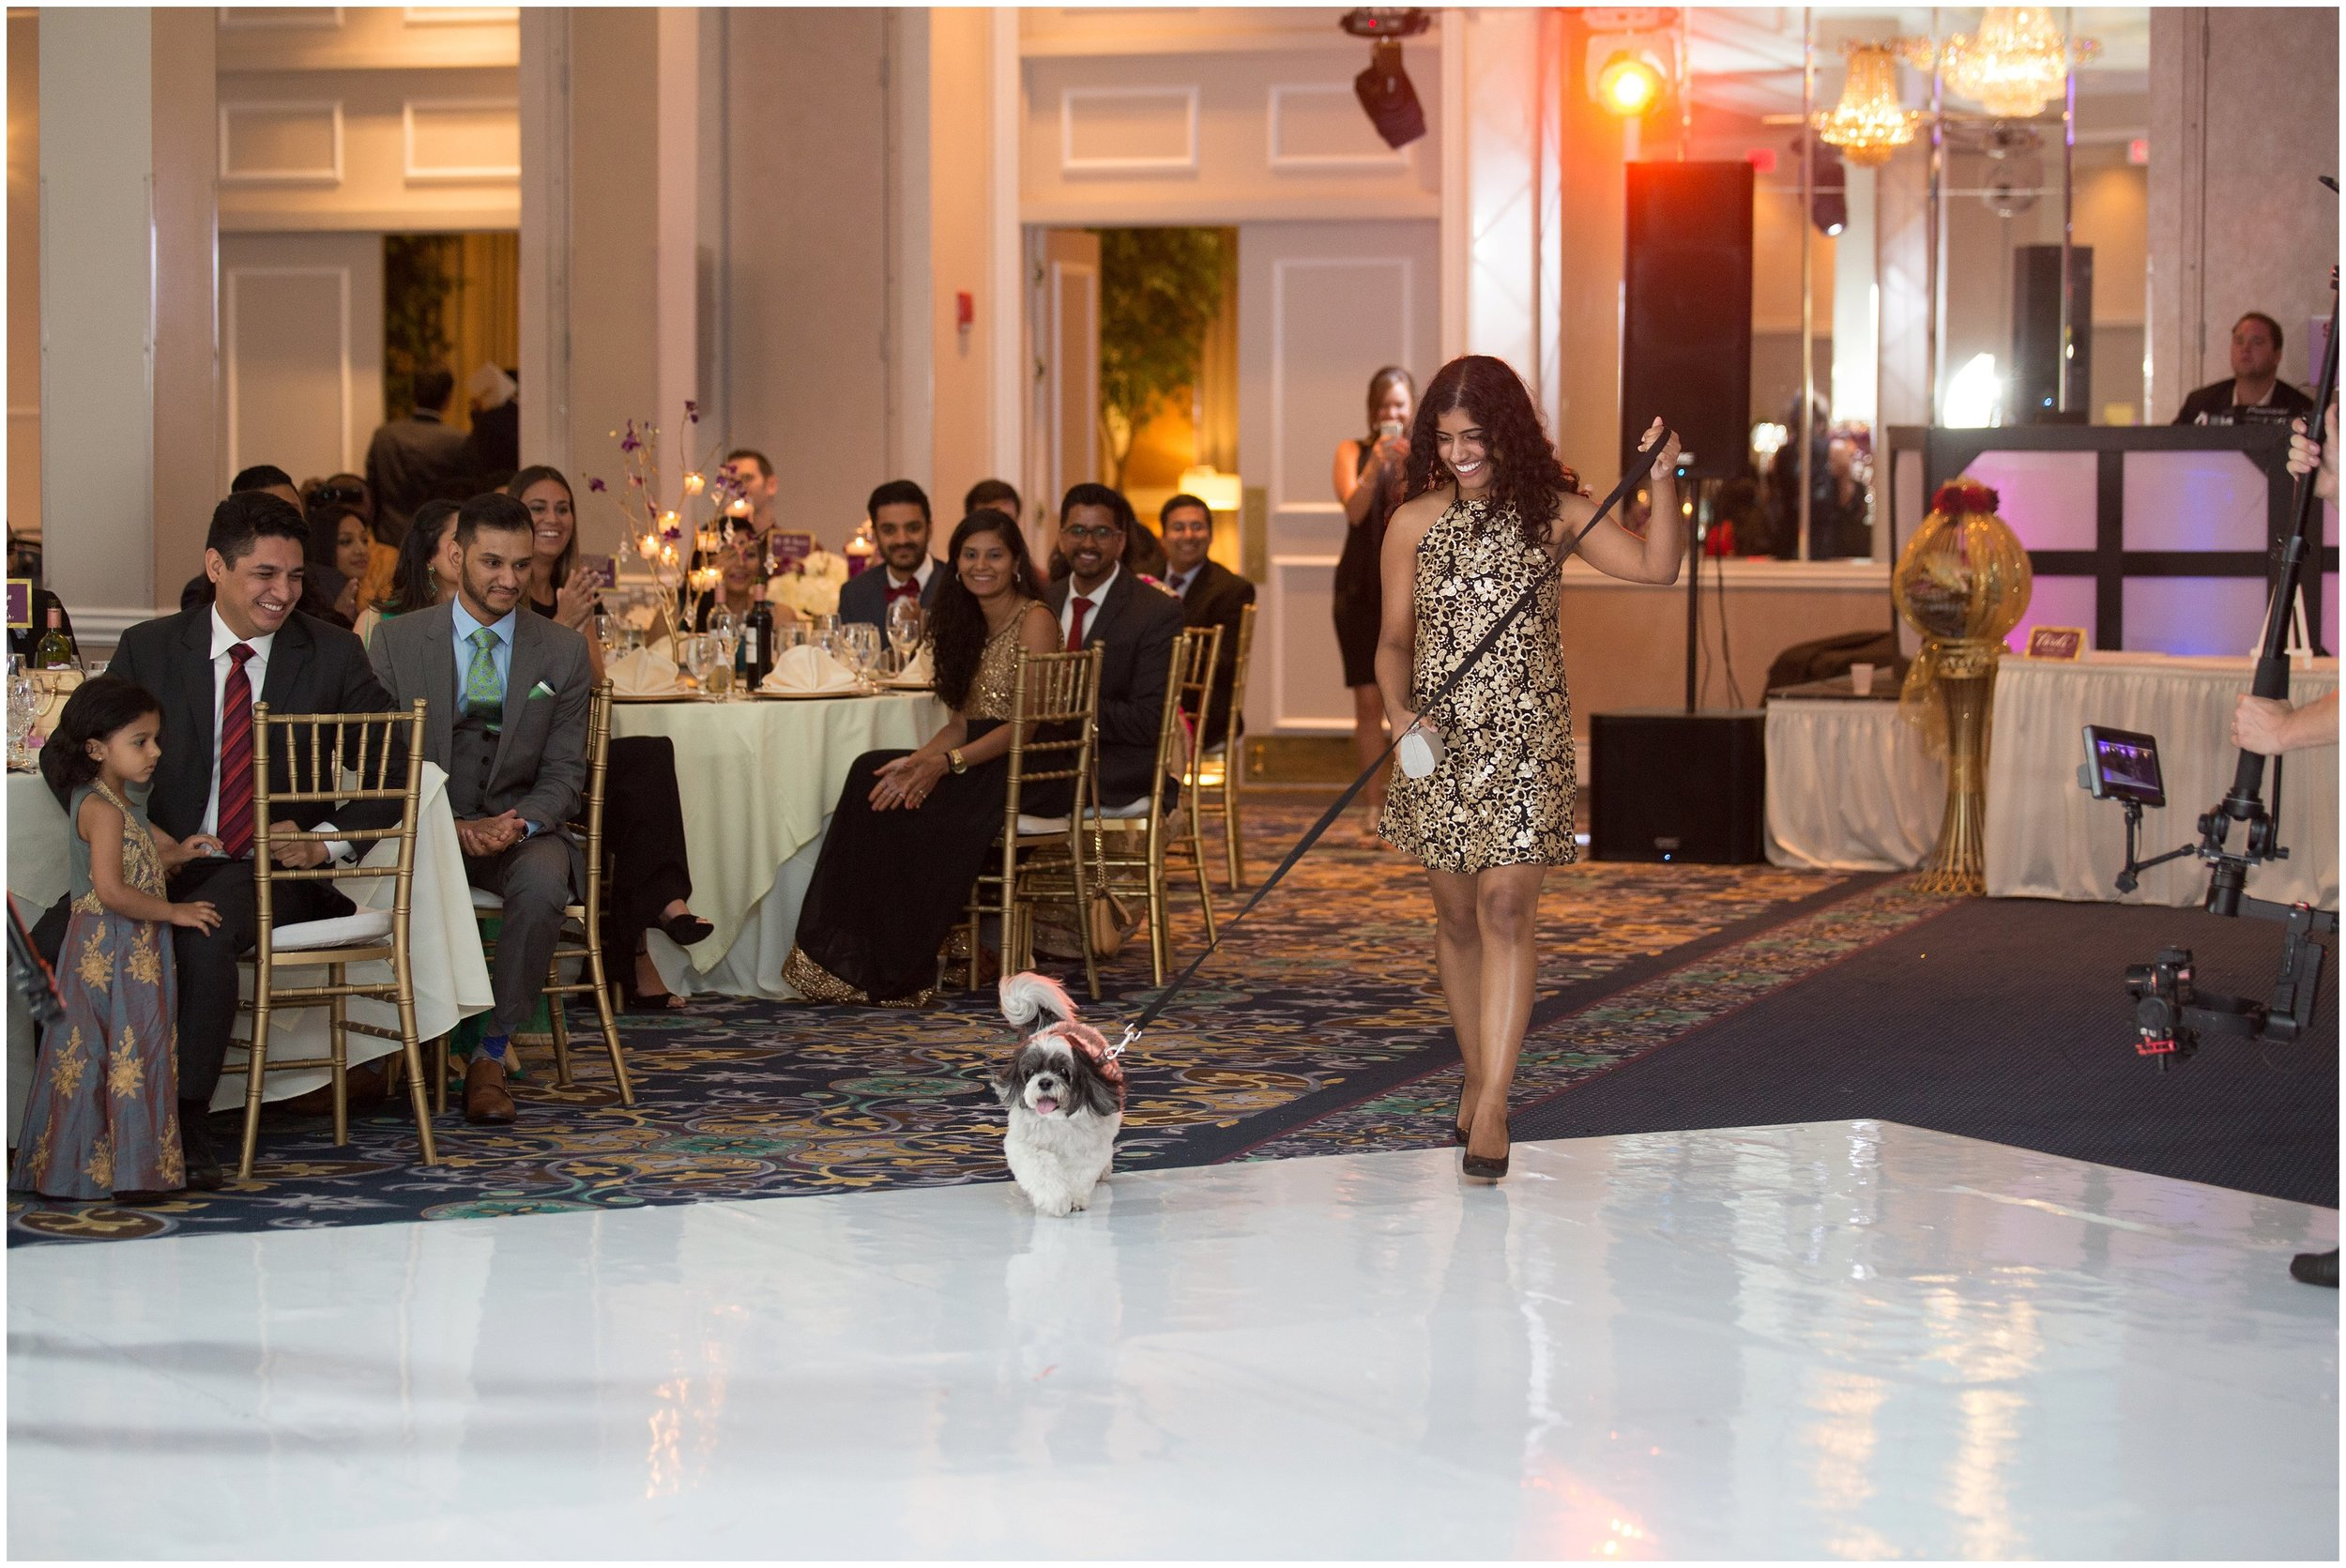 Le Cape Weddings - South Asian Wedding in Illinois - Tanvi and Anshul -2192_LuxuryDestinationPhotographer.jpg